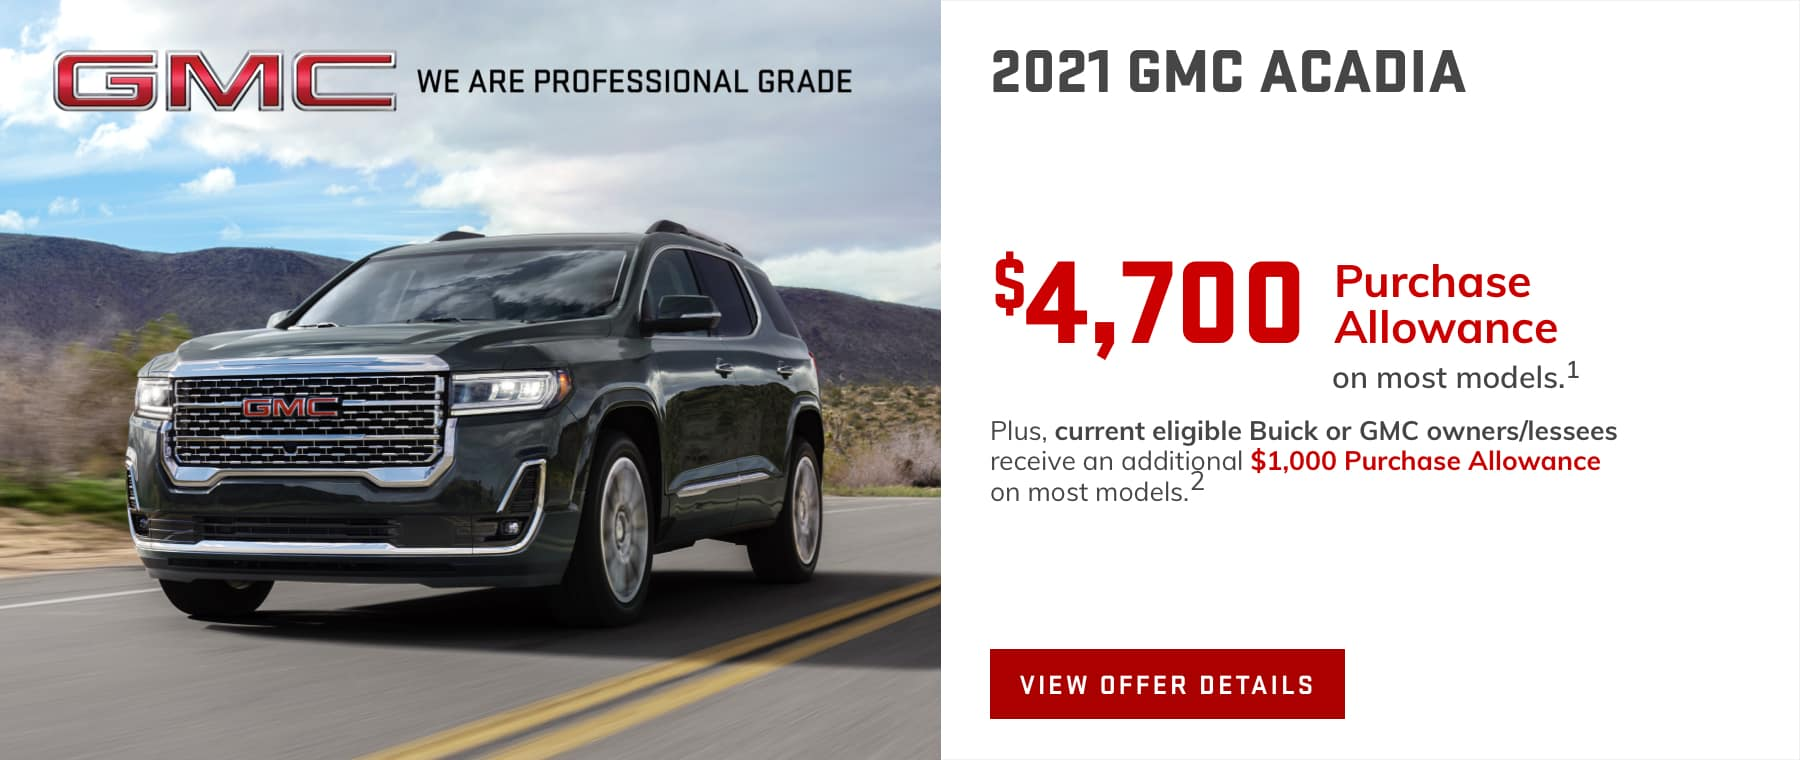 Price after all offers on this Acadia.1 Plus, current eligible Buick or GMC owners/lessees receive an additional $1,000 Purchase Allowance on most models.2